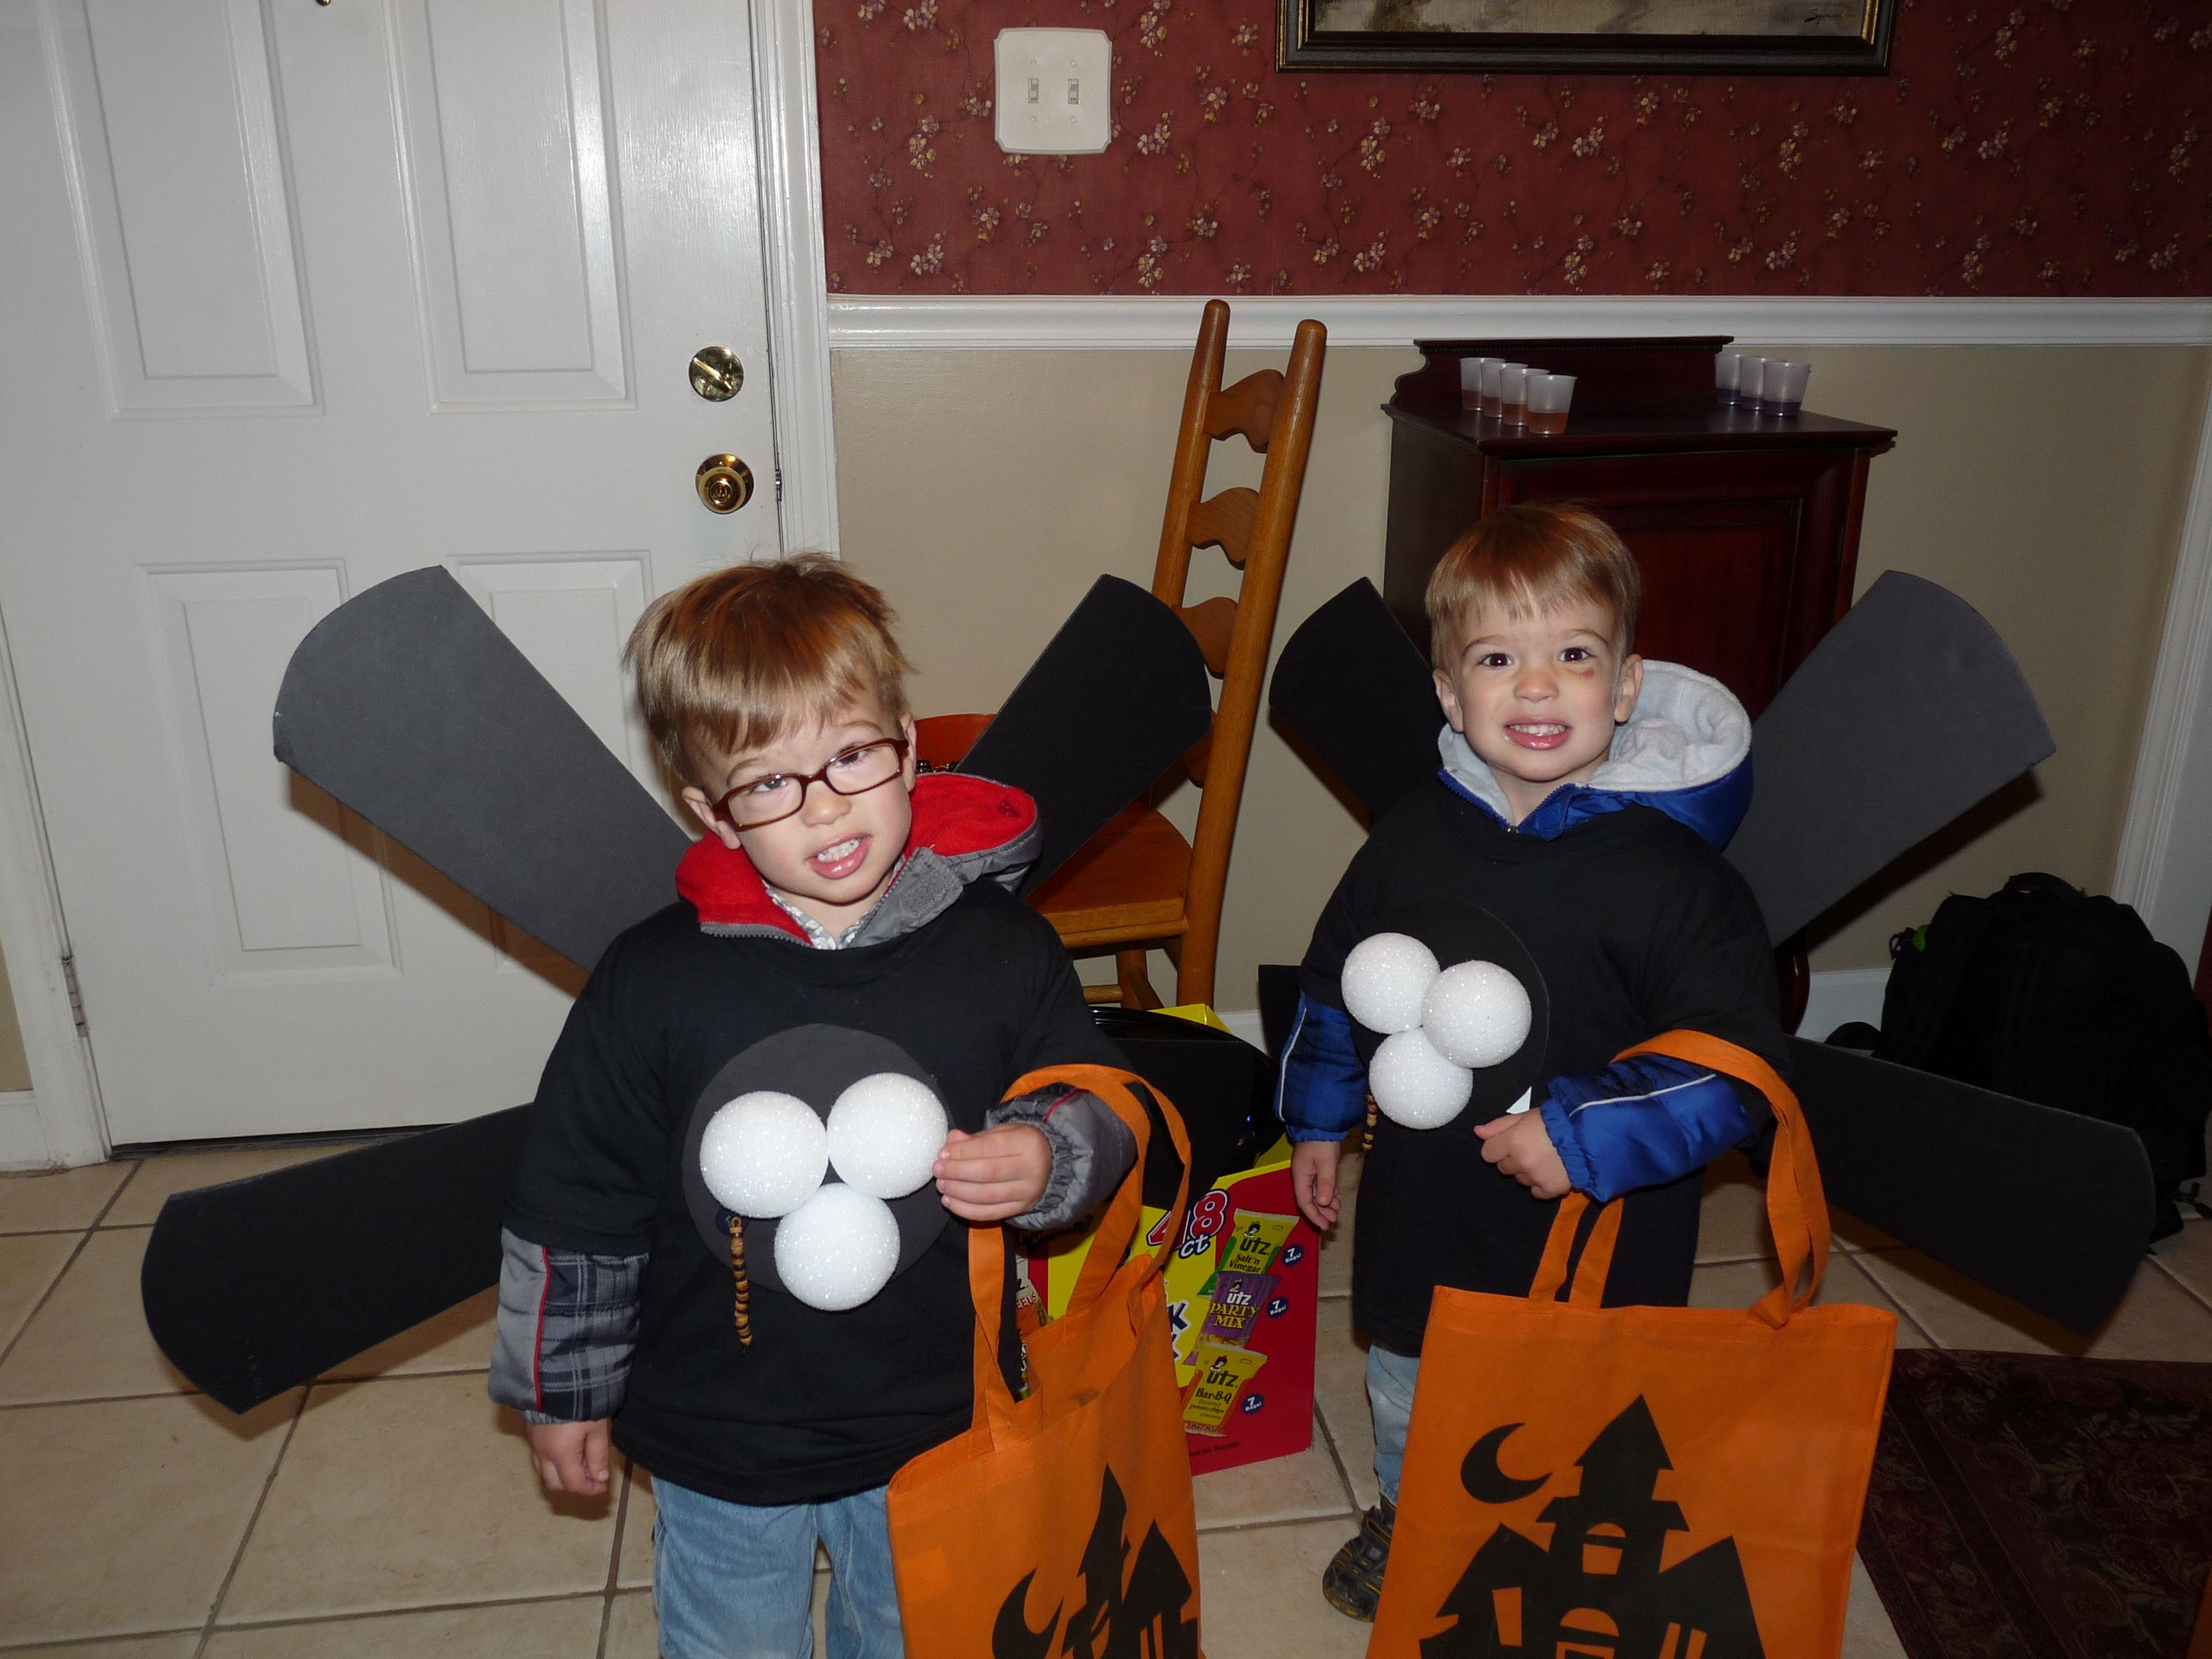 Trick or treating ceiling fans how tohttpdawnwhispersandshouts trick or treating ceiling fans how tohttpdawnwhispersandshoutsspot halloween costumes aloadofball Image collections